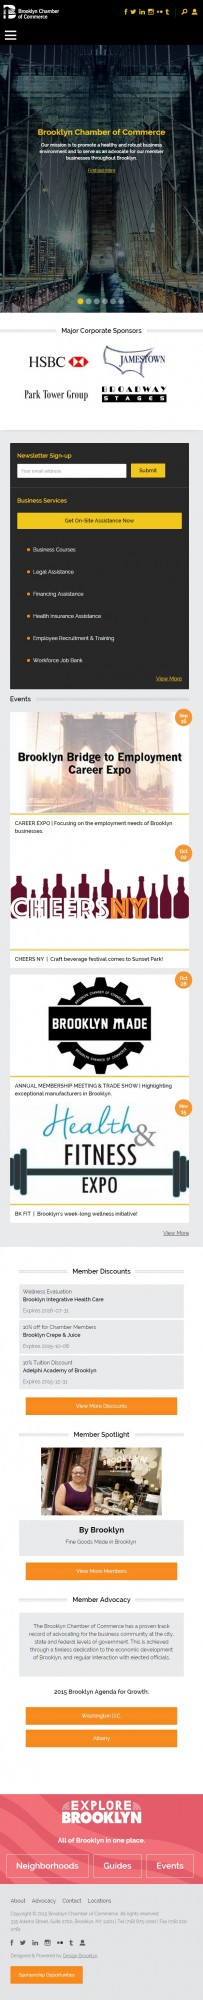 Mobile view of Brooklyn Chamber of Commerce website